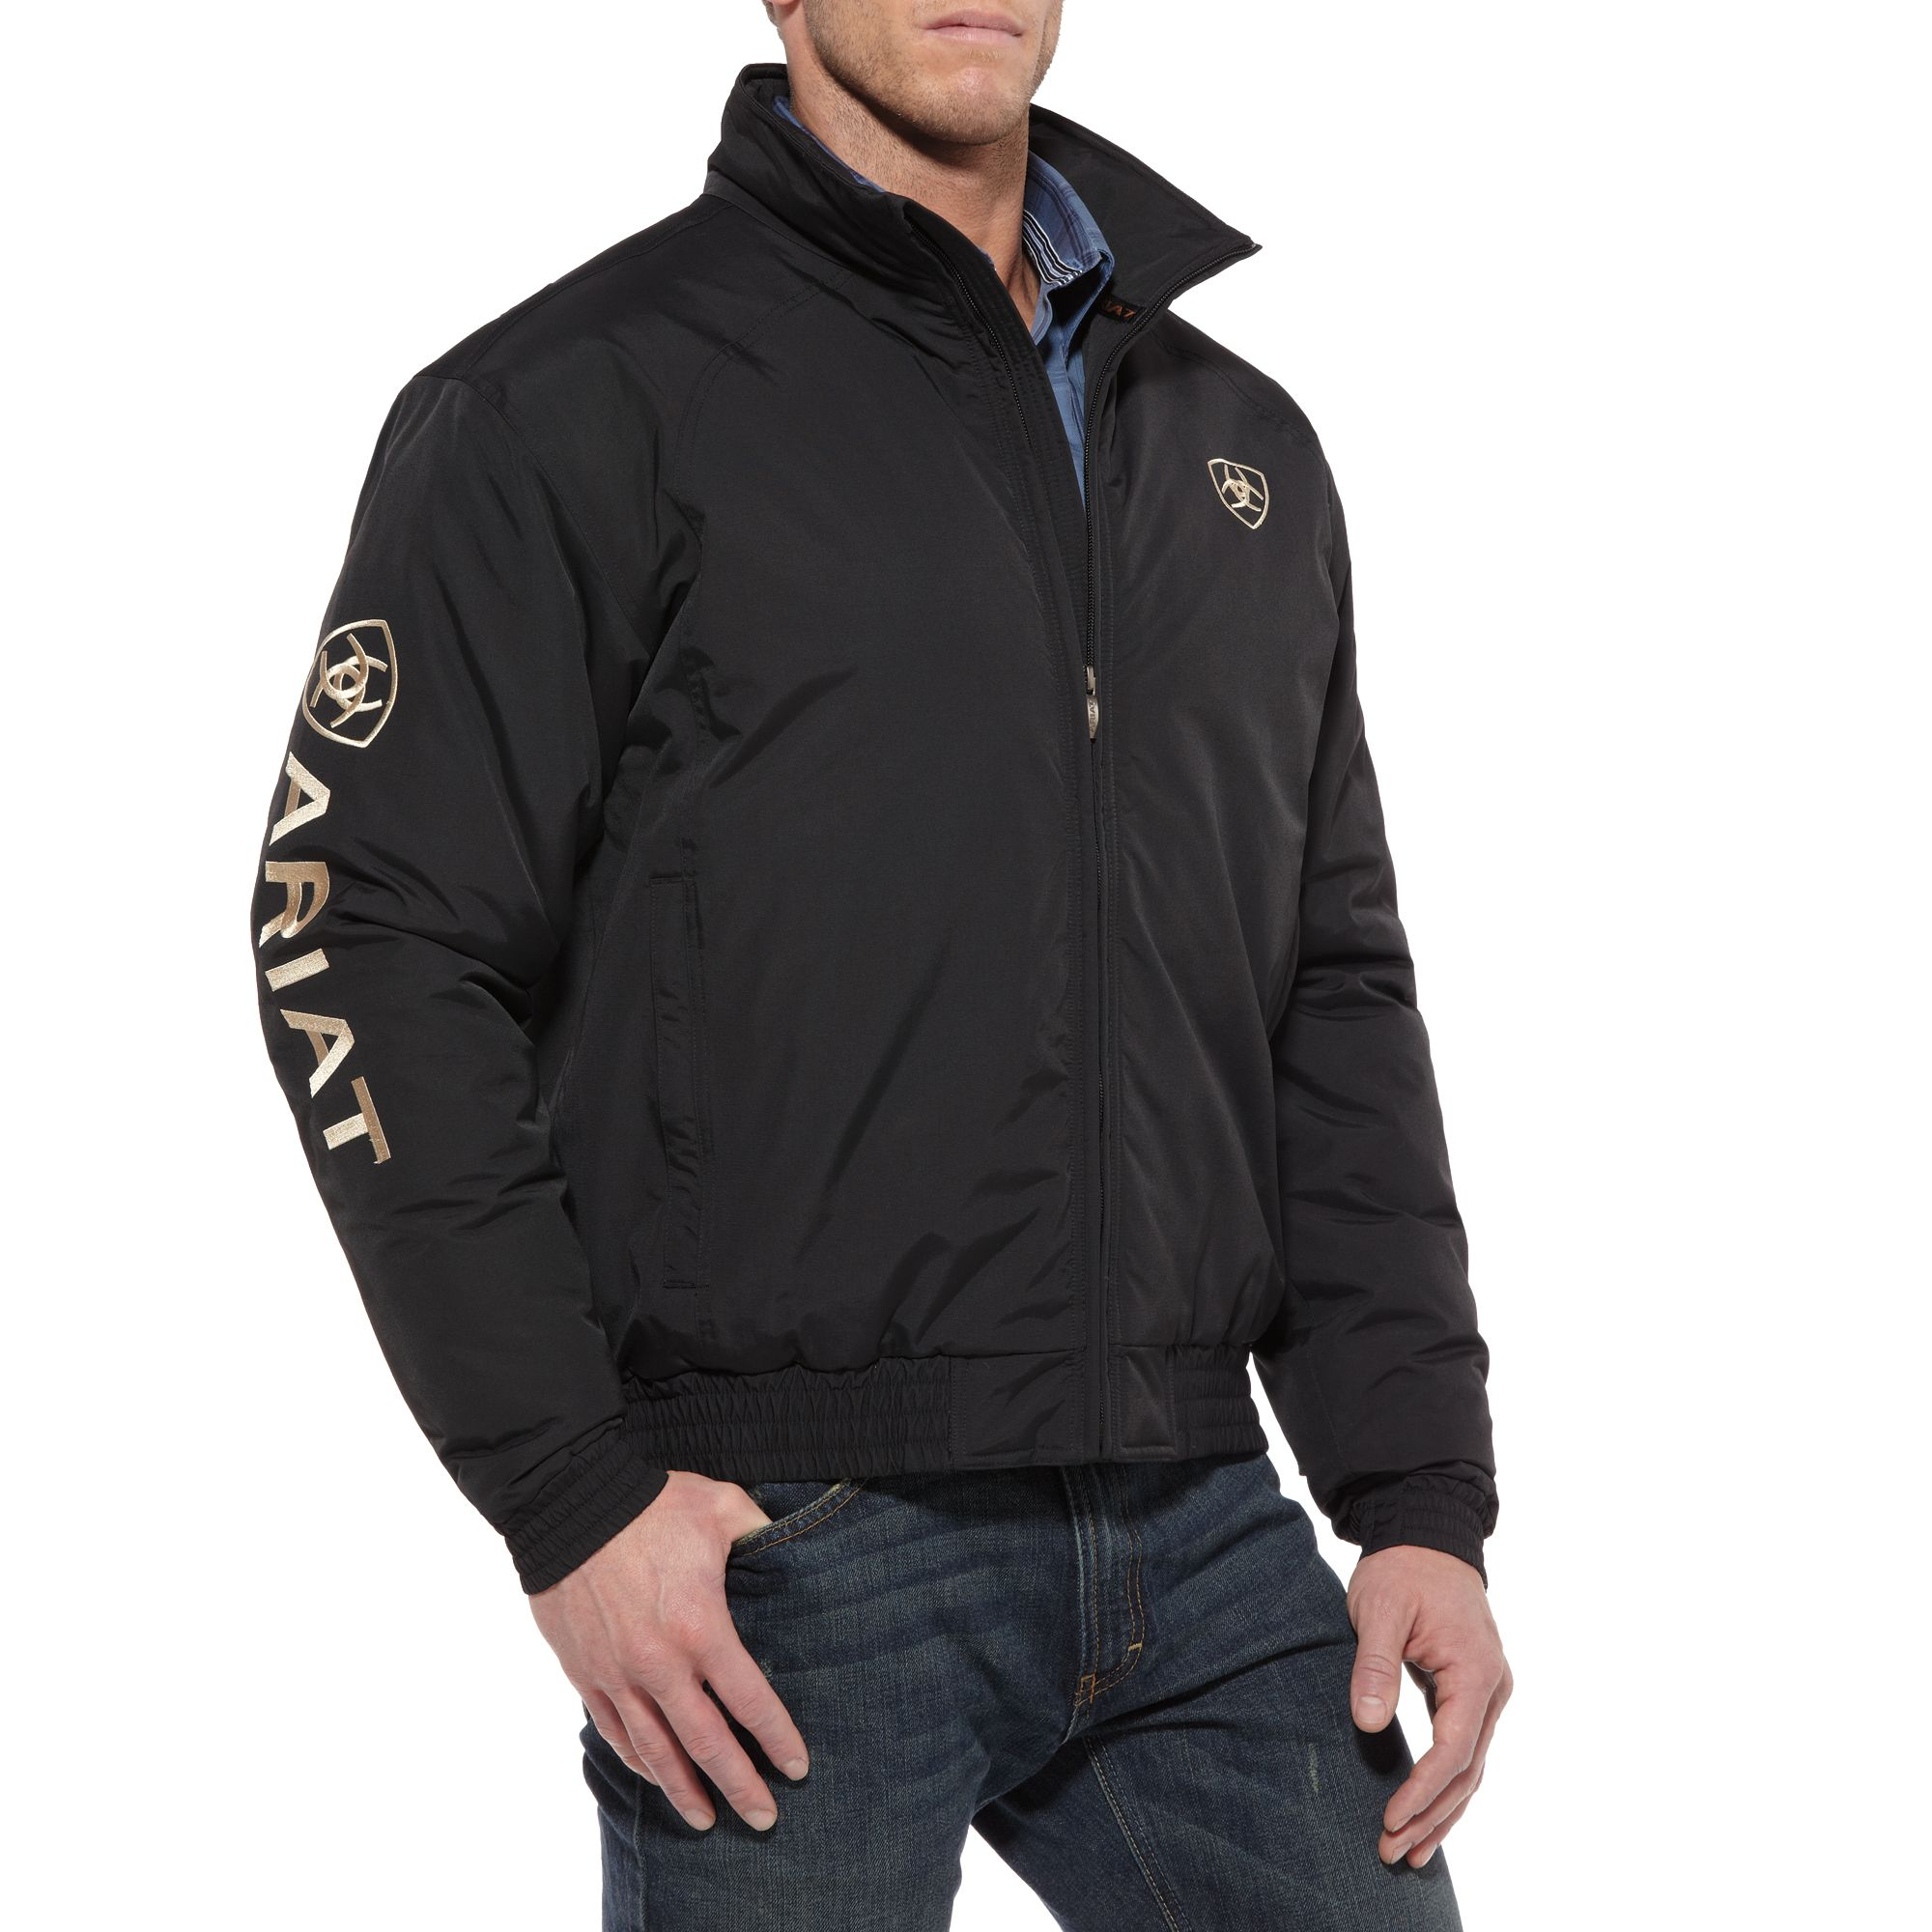 Ariat Team Jacket - Mens, Black